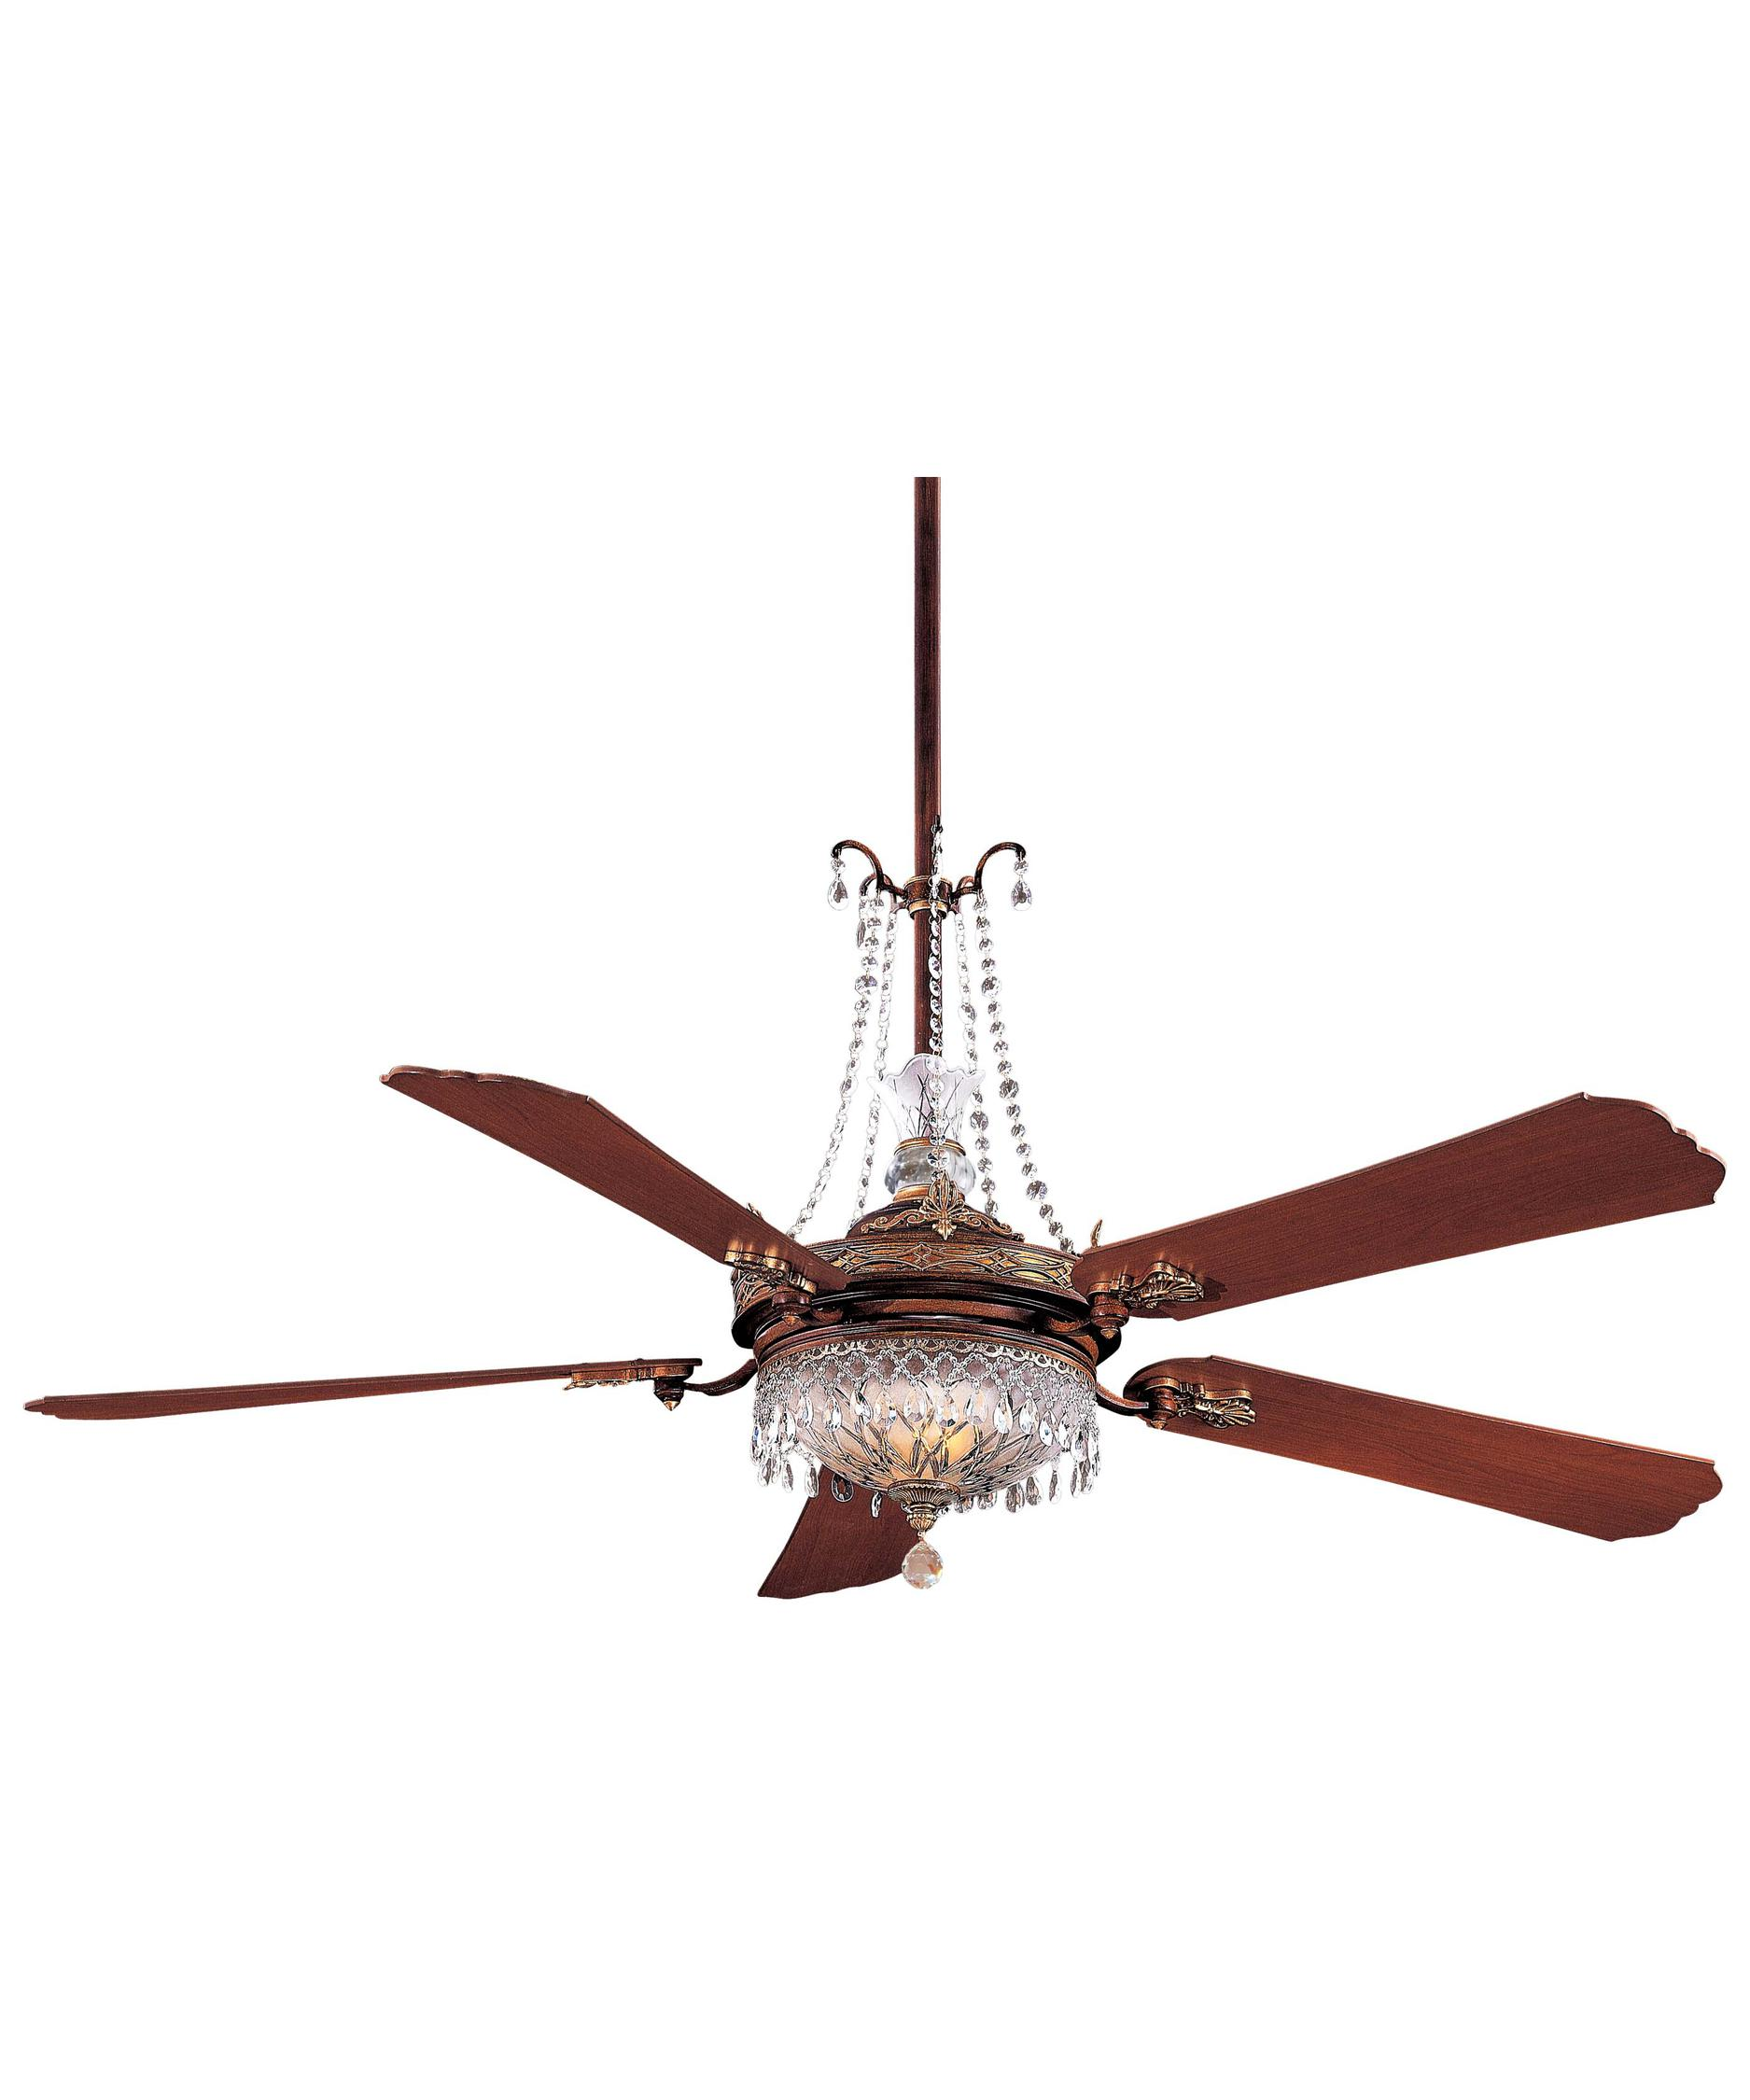 Murray Feiss Ceiling Fan Light Kit: Minka Aire F900 Cristafano 68 Inch Ceiling Fan With Light